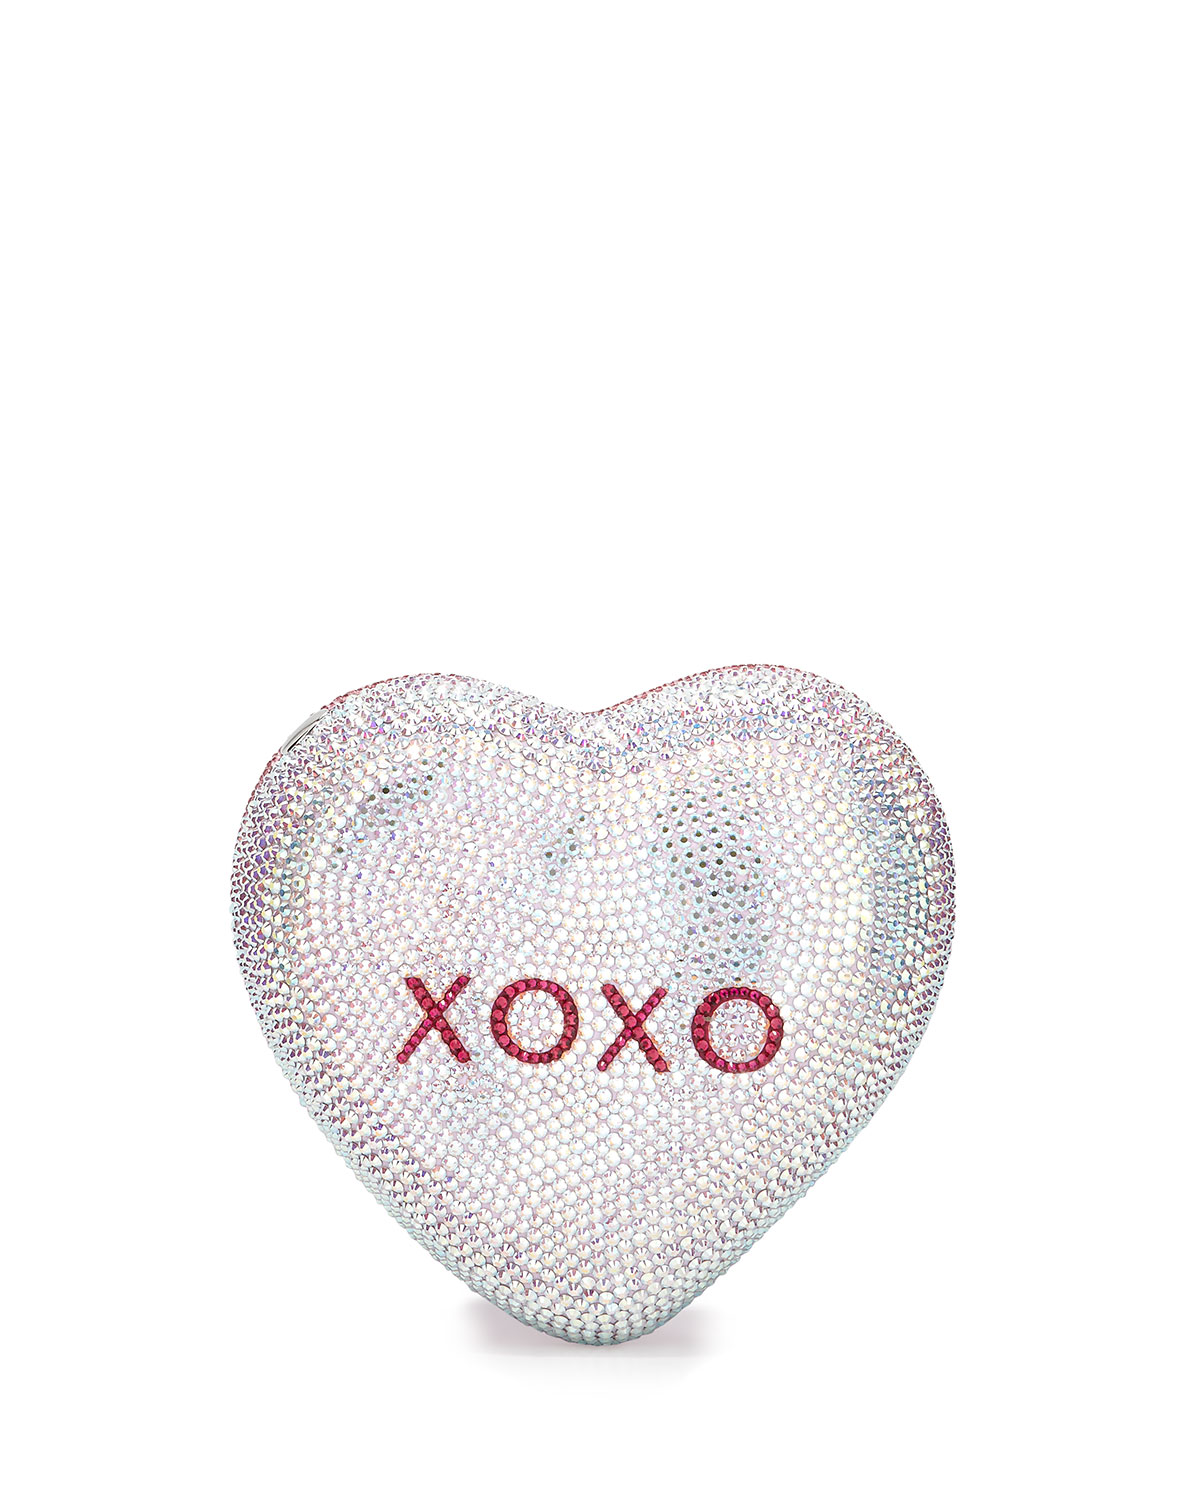 Hunter Be Mine Heart Crystal Minaudiere, Pink/Silver Rose, Pink (Silver Rose